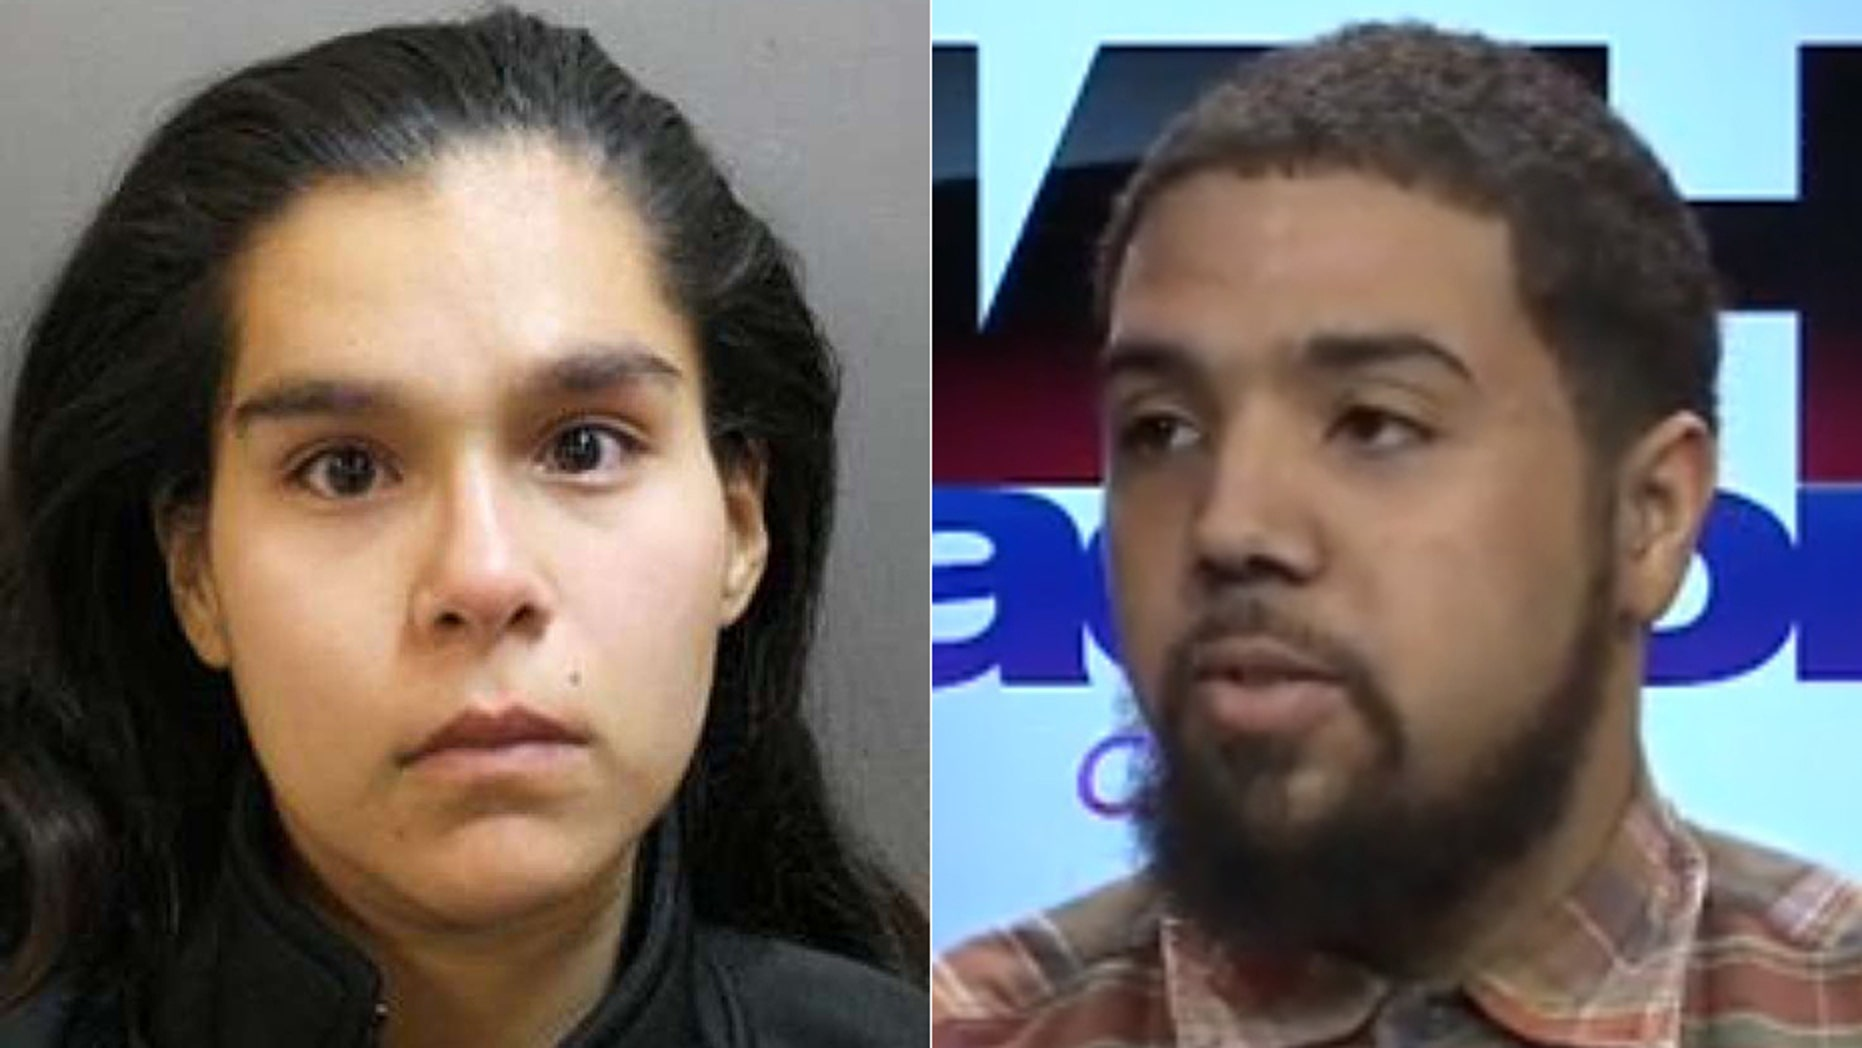 Lisa Garcia, 22, left, reportedly was arrested Thursday after she falsely claimed her boyfriend, Brandon Berrott, 23, threatened her life on social media, but was actually writing those posts herself. (Fox 26)